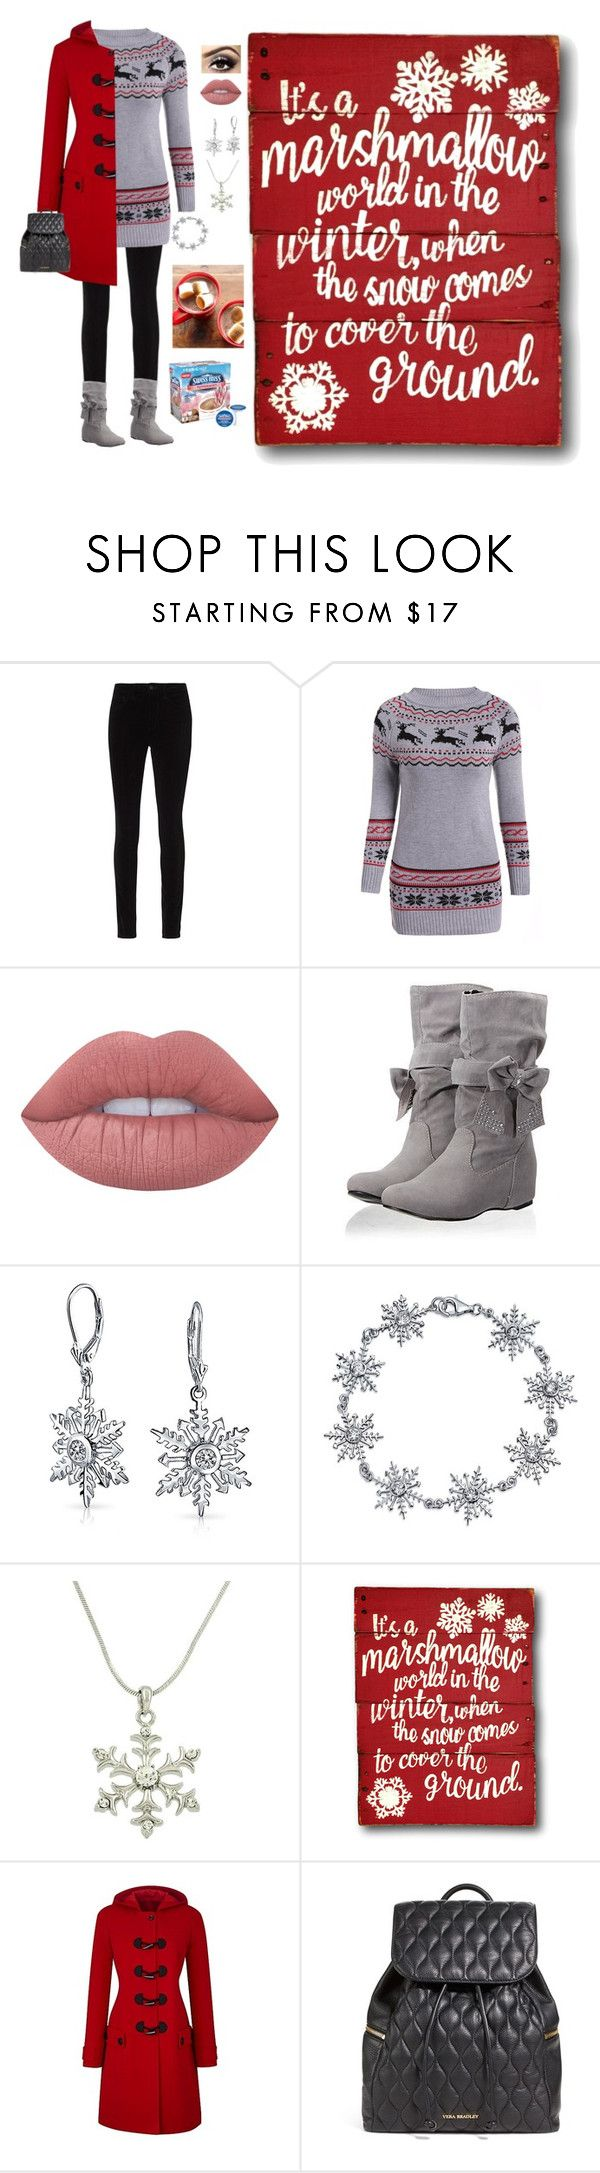 """""""Winter Time"""" by pinky-dee ❤ liked on Polyvore featuring L'Agence, Lime Crime, Bling Jewelry, Vera Bradley and Keurig"""